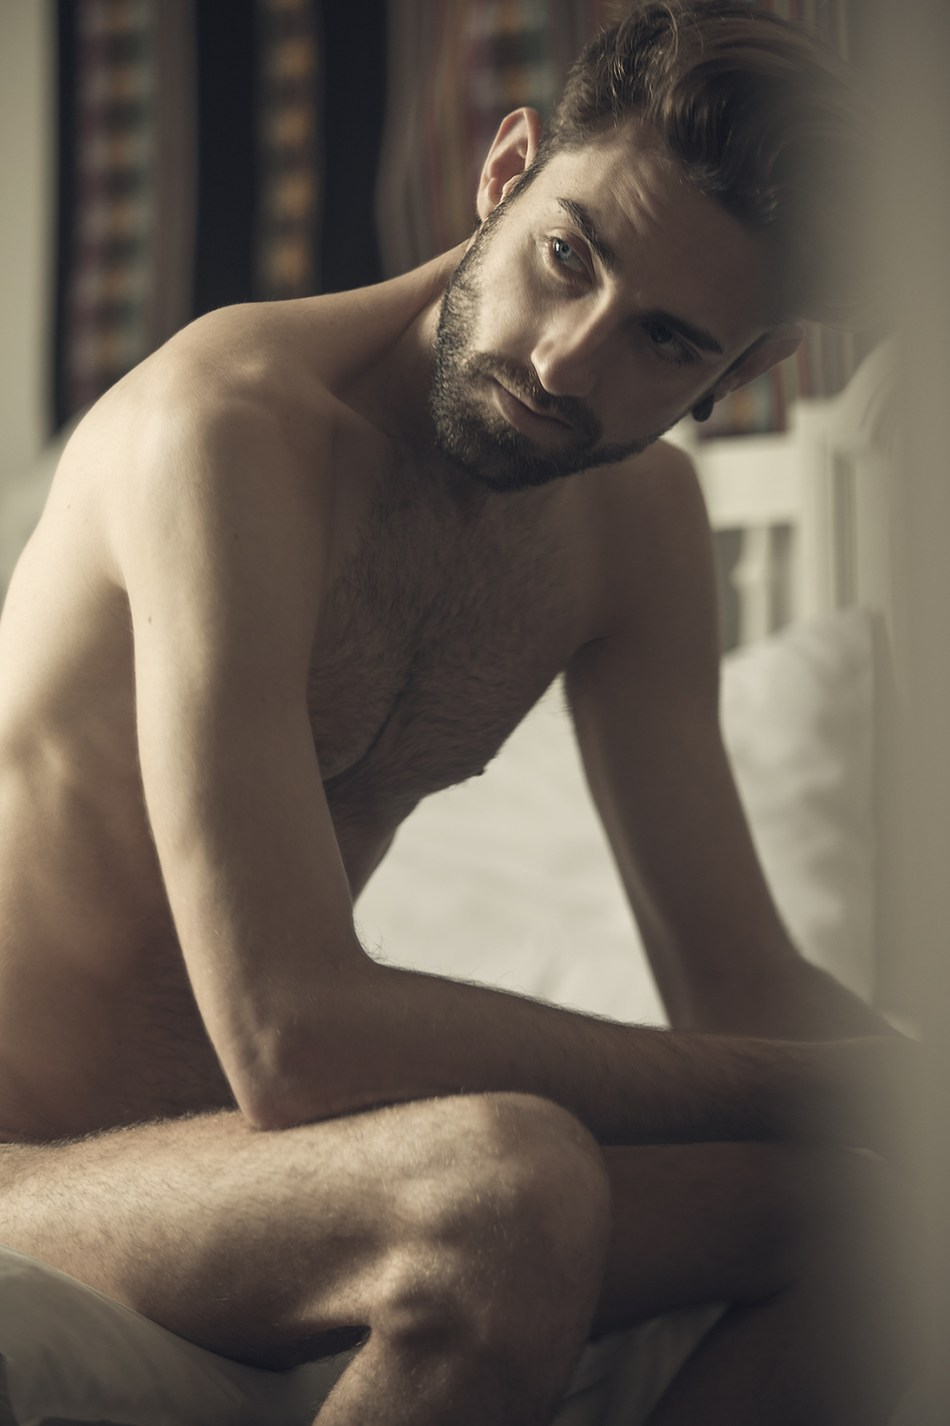 """Hypnotized with those beautiful eyes and body, introducing the new entitled work """"awake"""" by Angel Ruiz with Spanish model Iván McKenzie a beautiful human being living in Peru."""